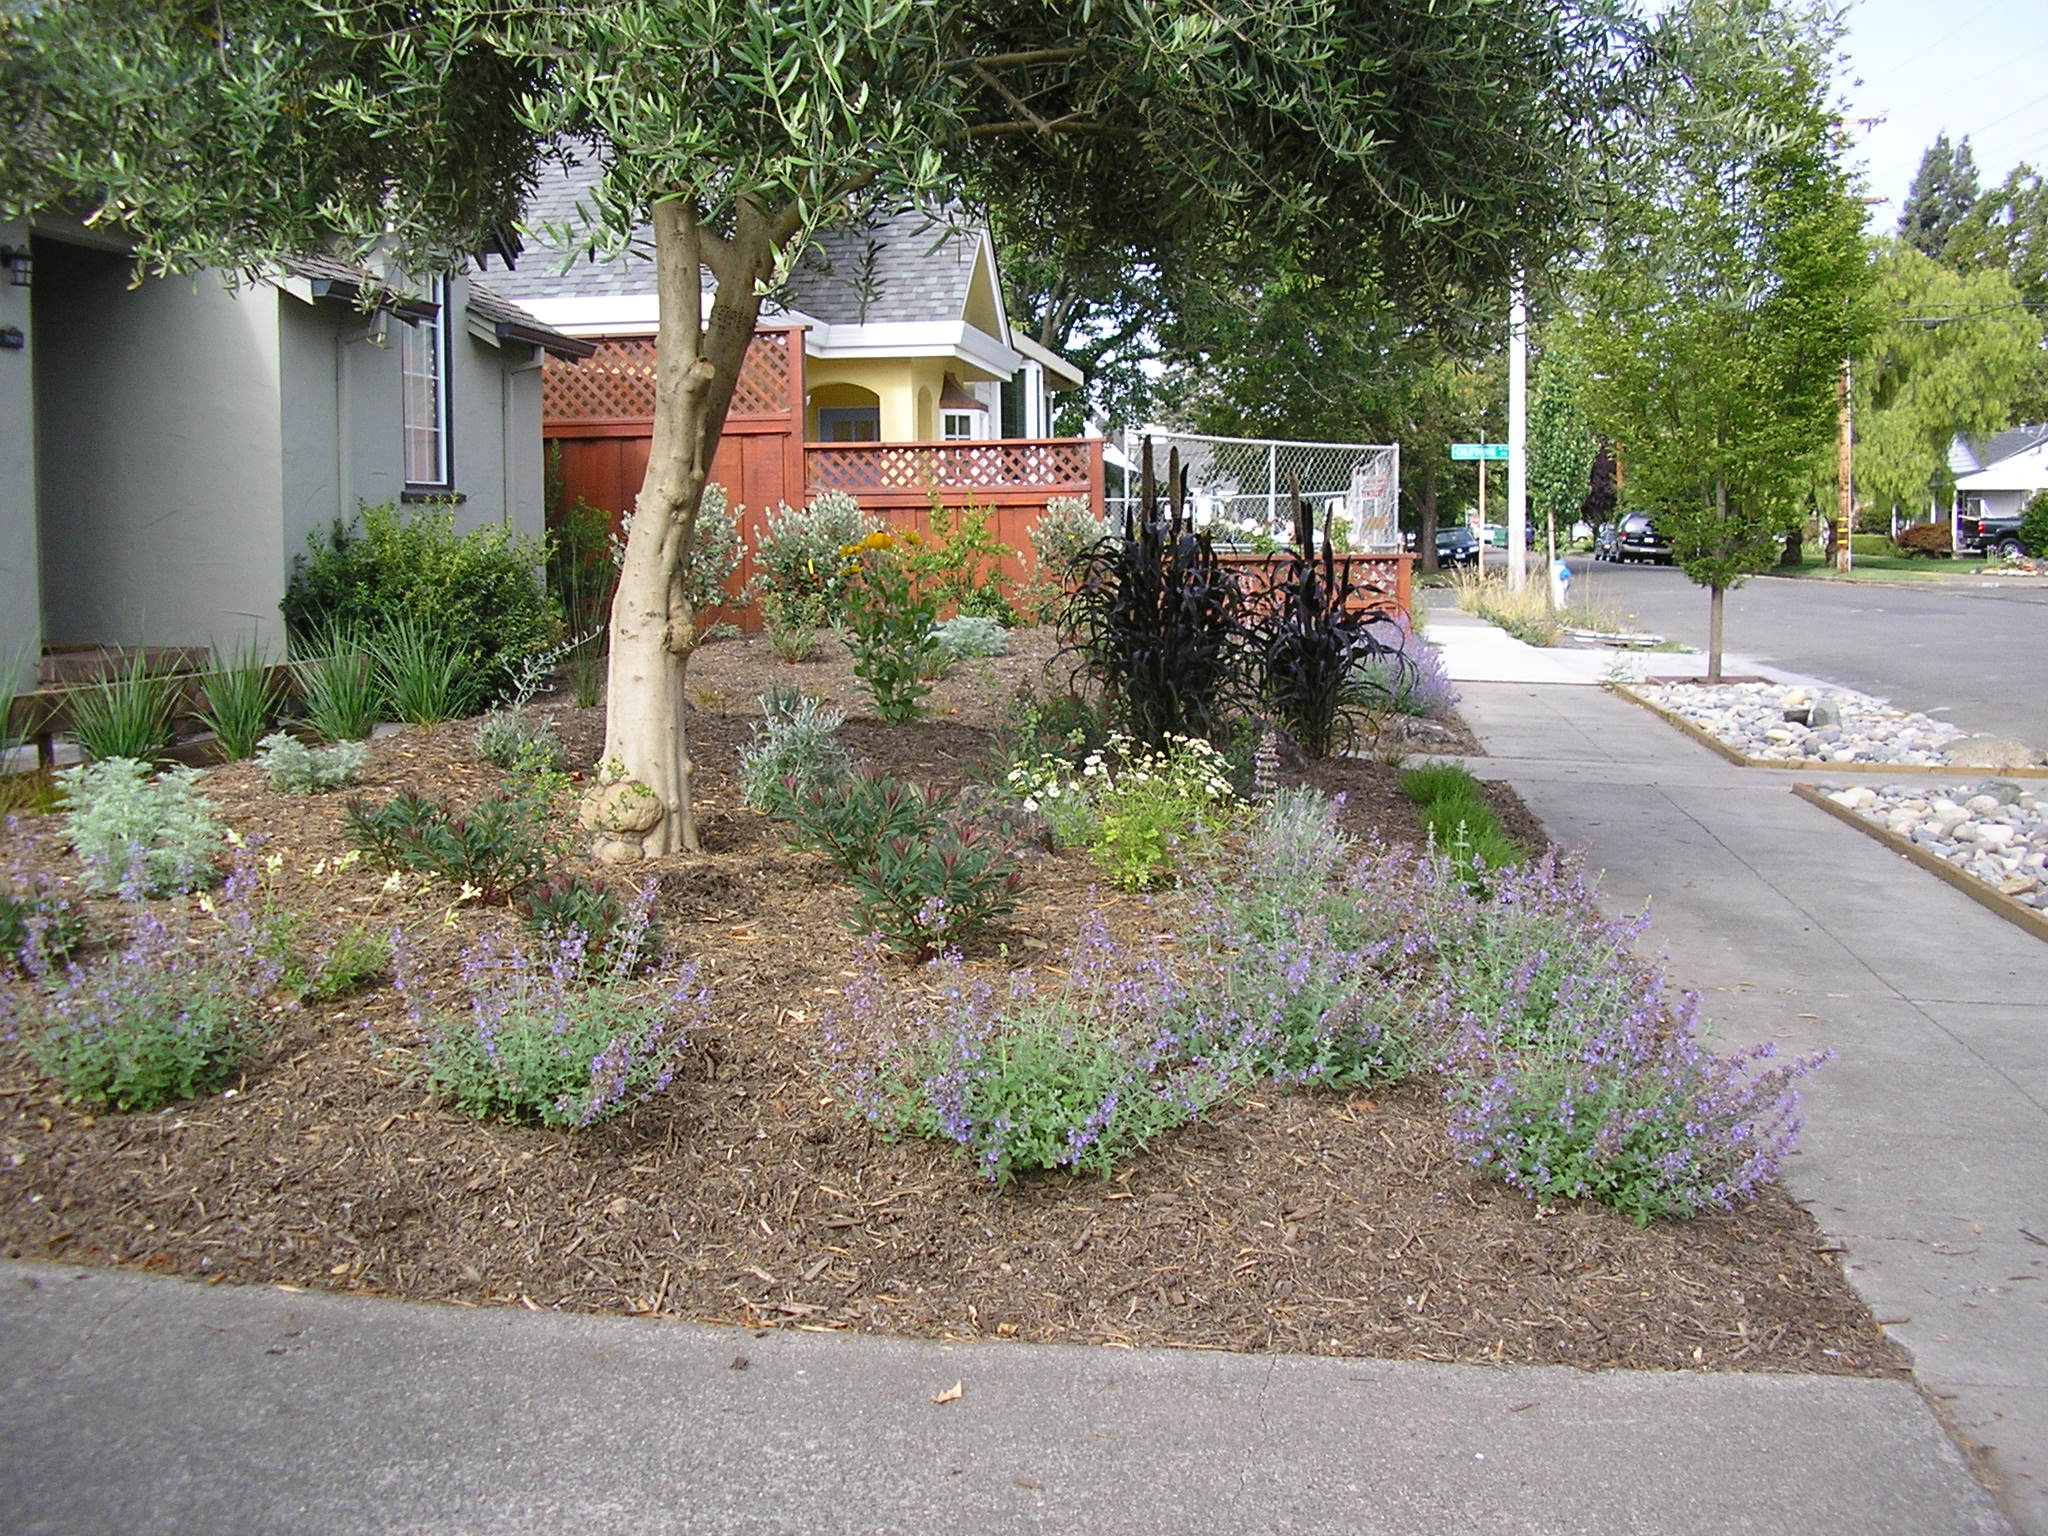 Here's an MML design/install that features catmint, millet, euphorbia, and pineapple guavas in the background.